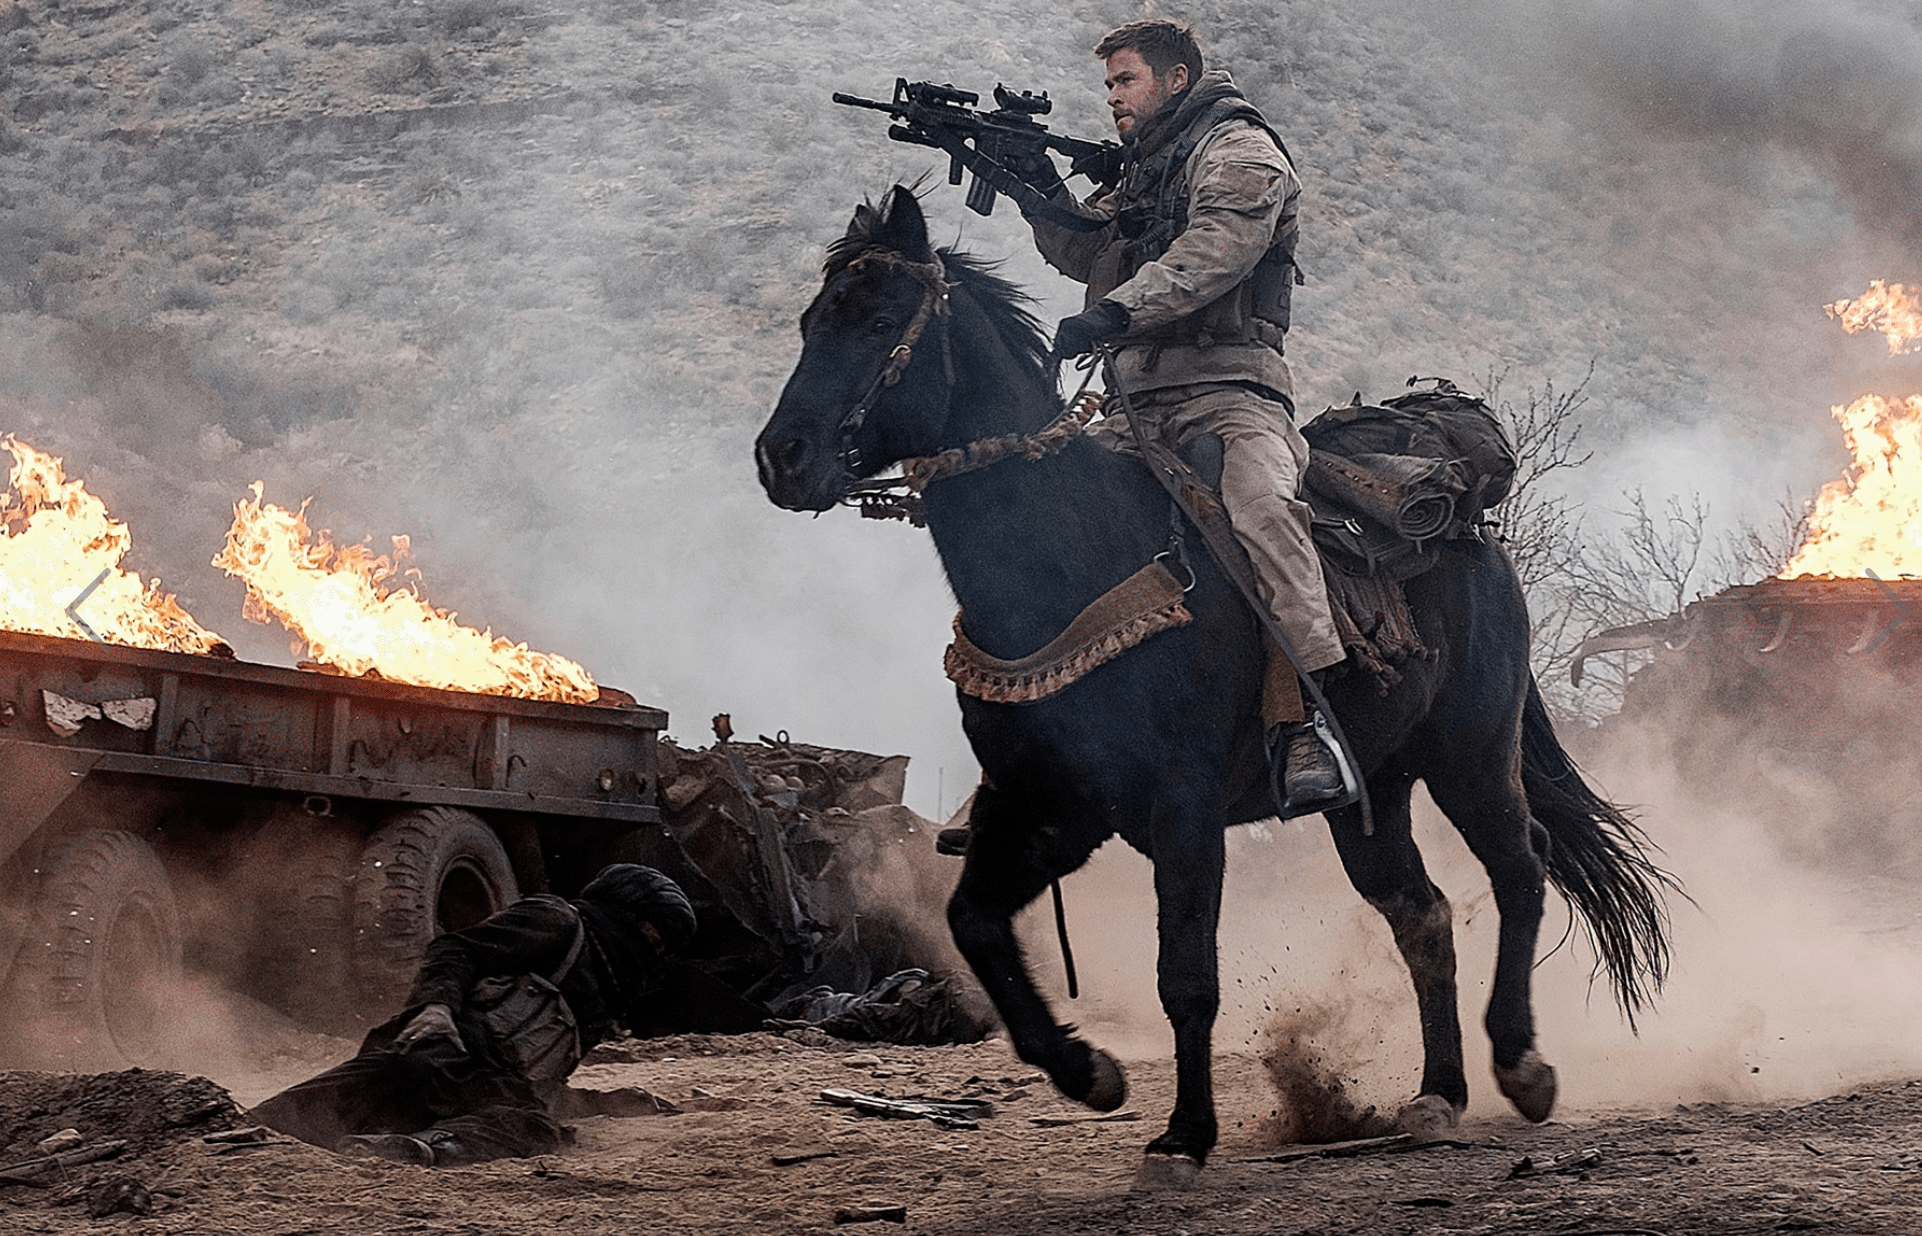 12 Strong Movie Review   Is It Appropriate For Kids? - Simply Today Life